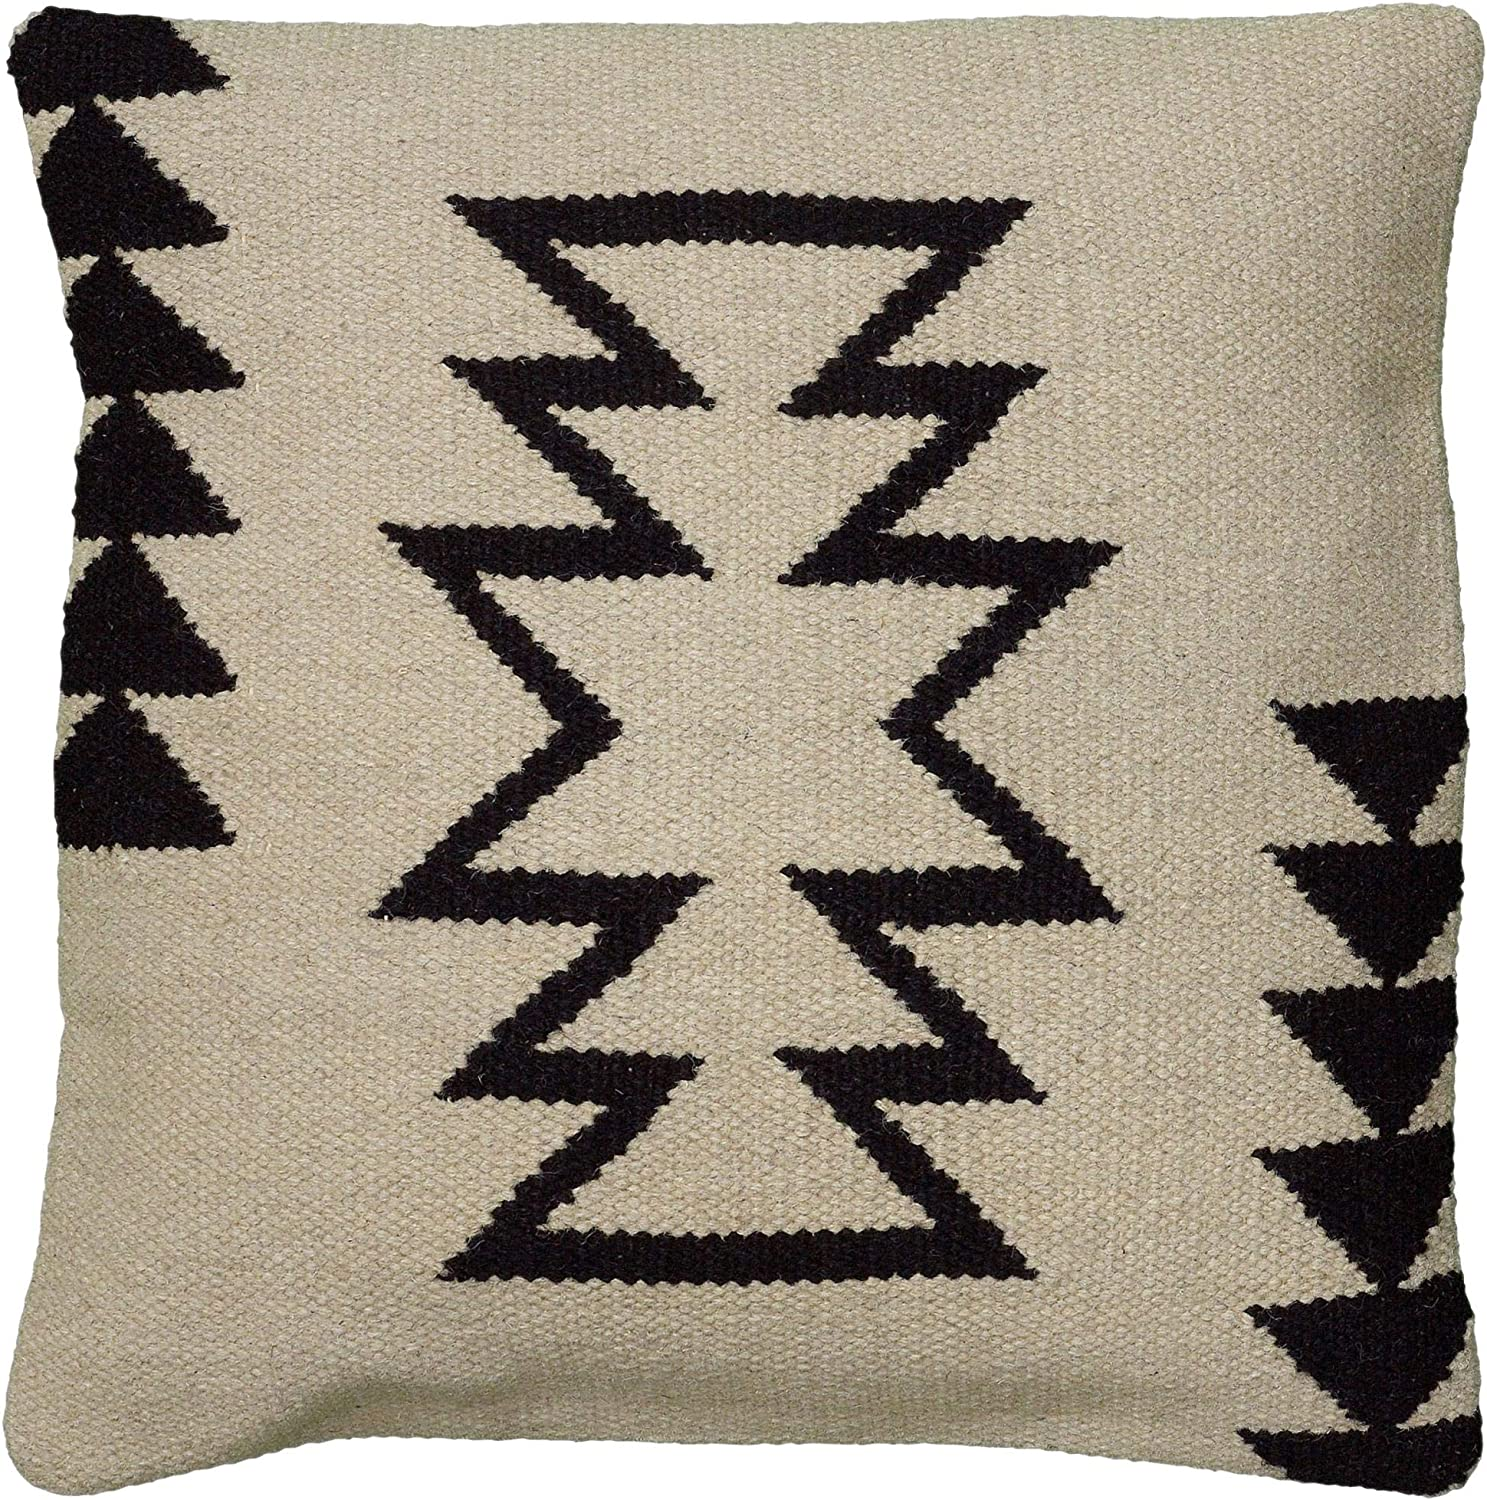 Rizzy Home T05815 Decorative Pillow 18 X18 Black White Neutral Home Kitchen